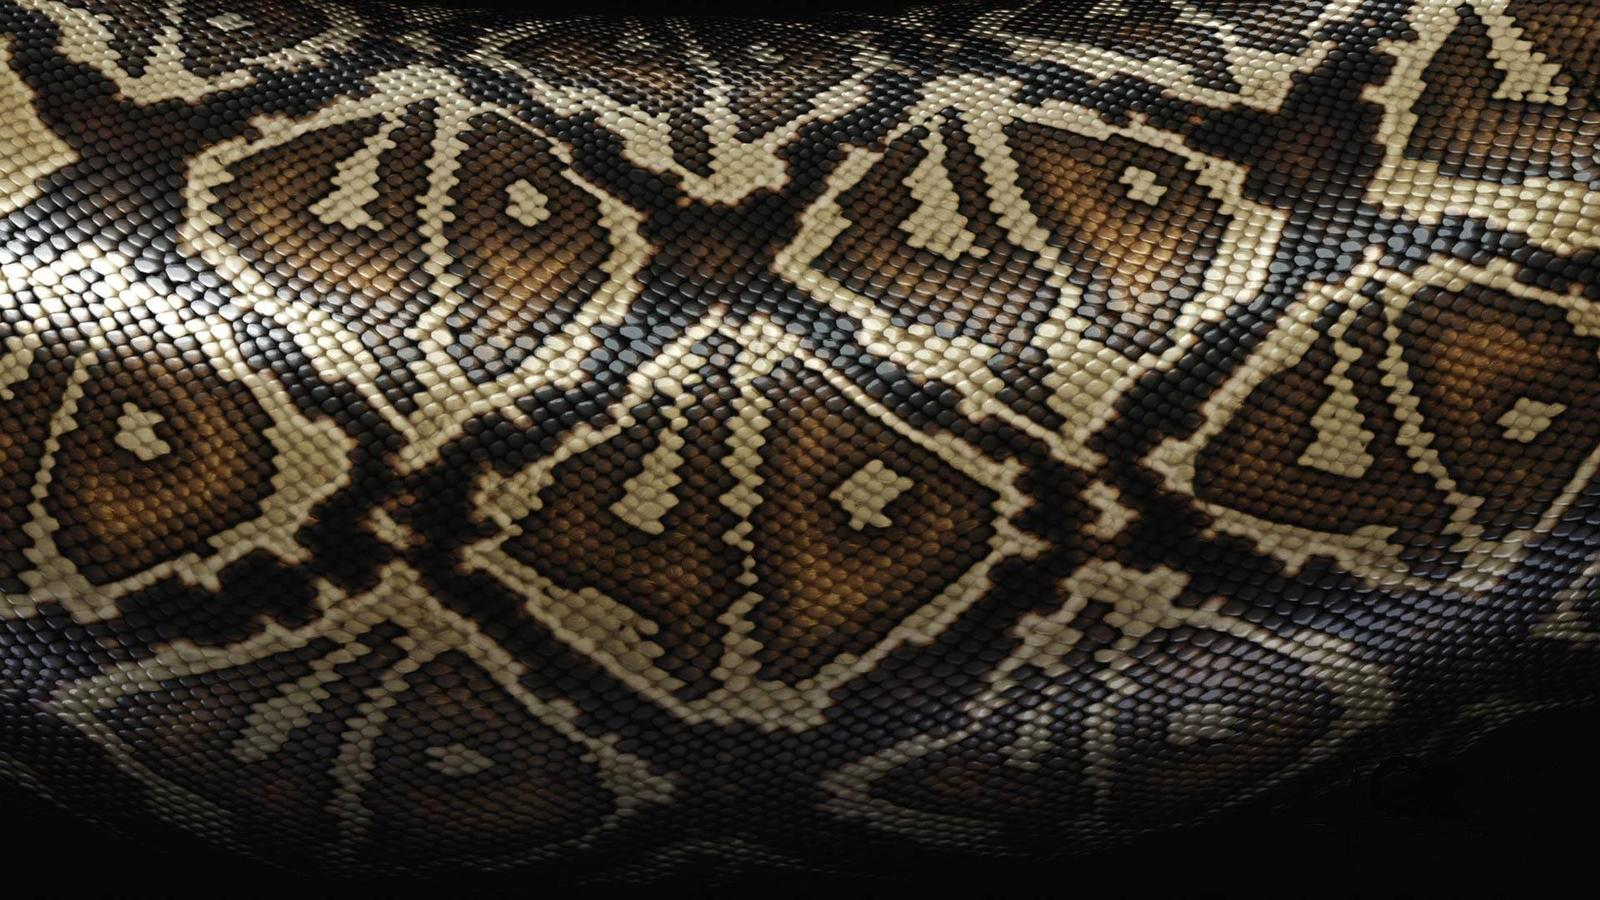 Snake Skin Background 7022053 1600x900